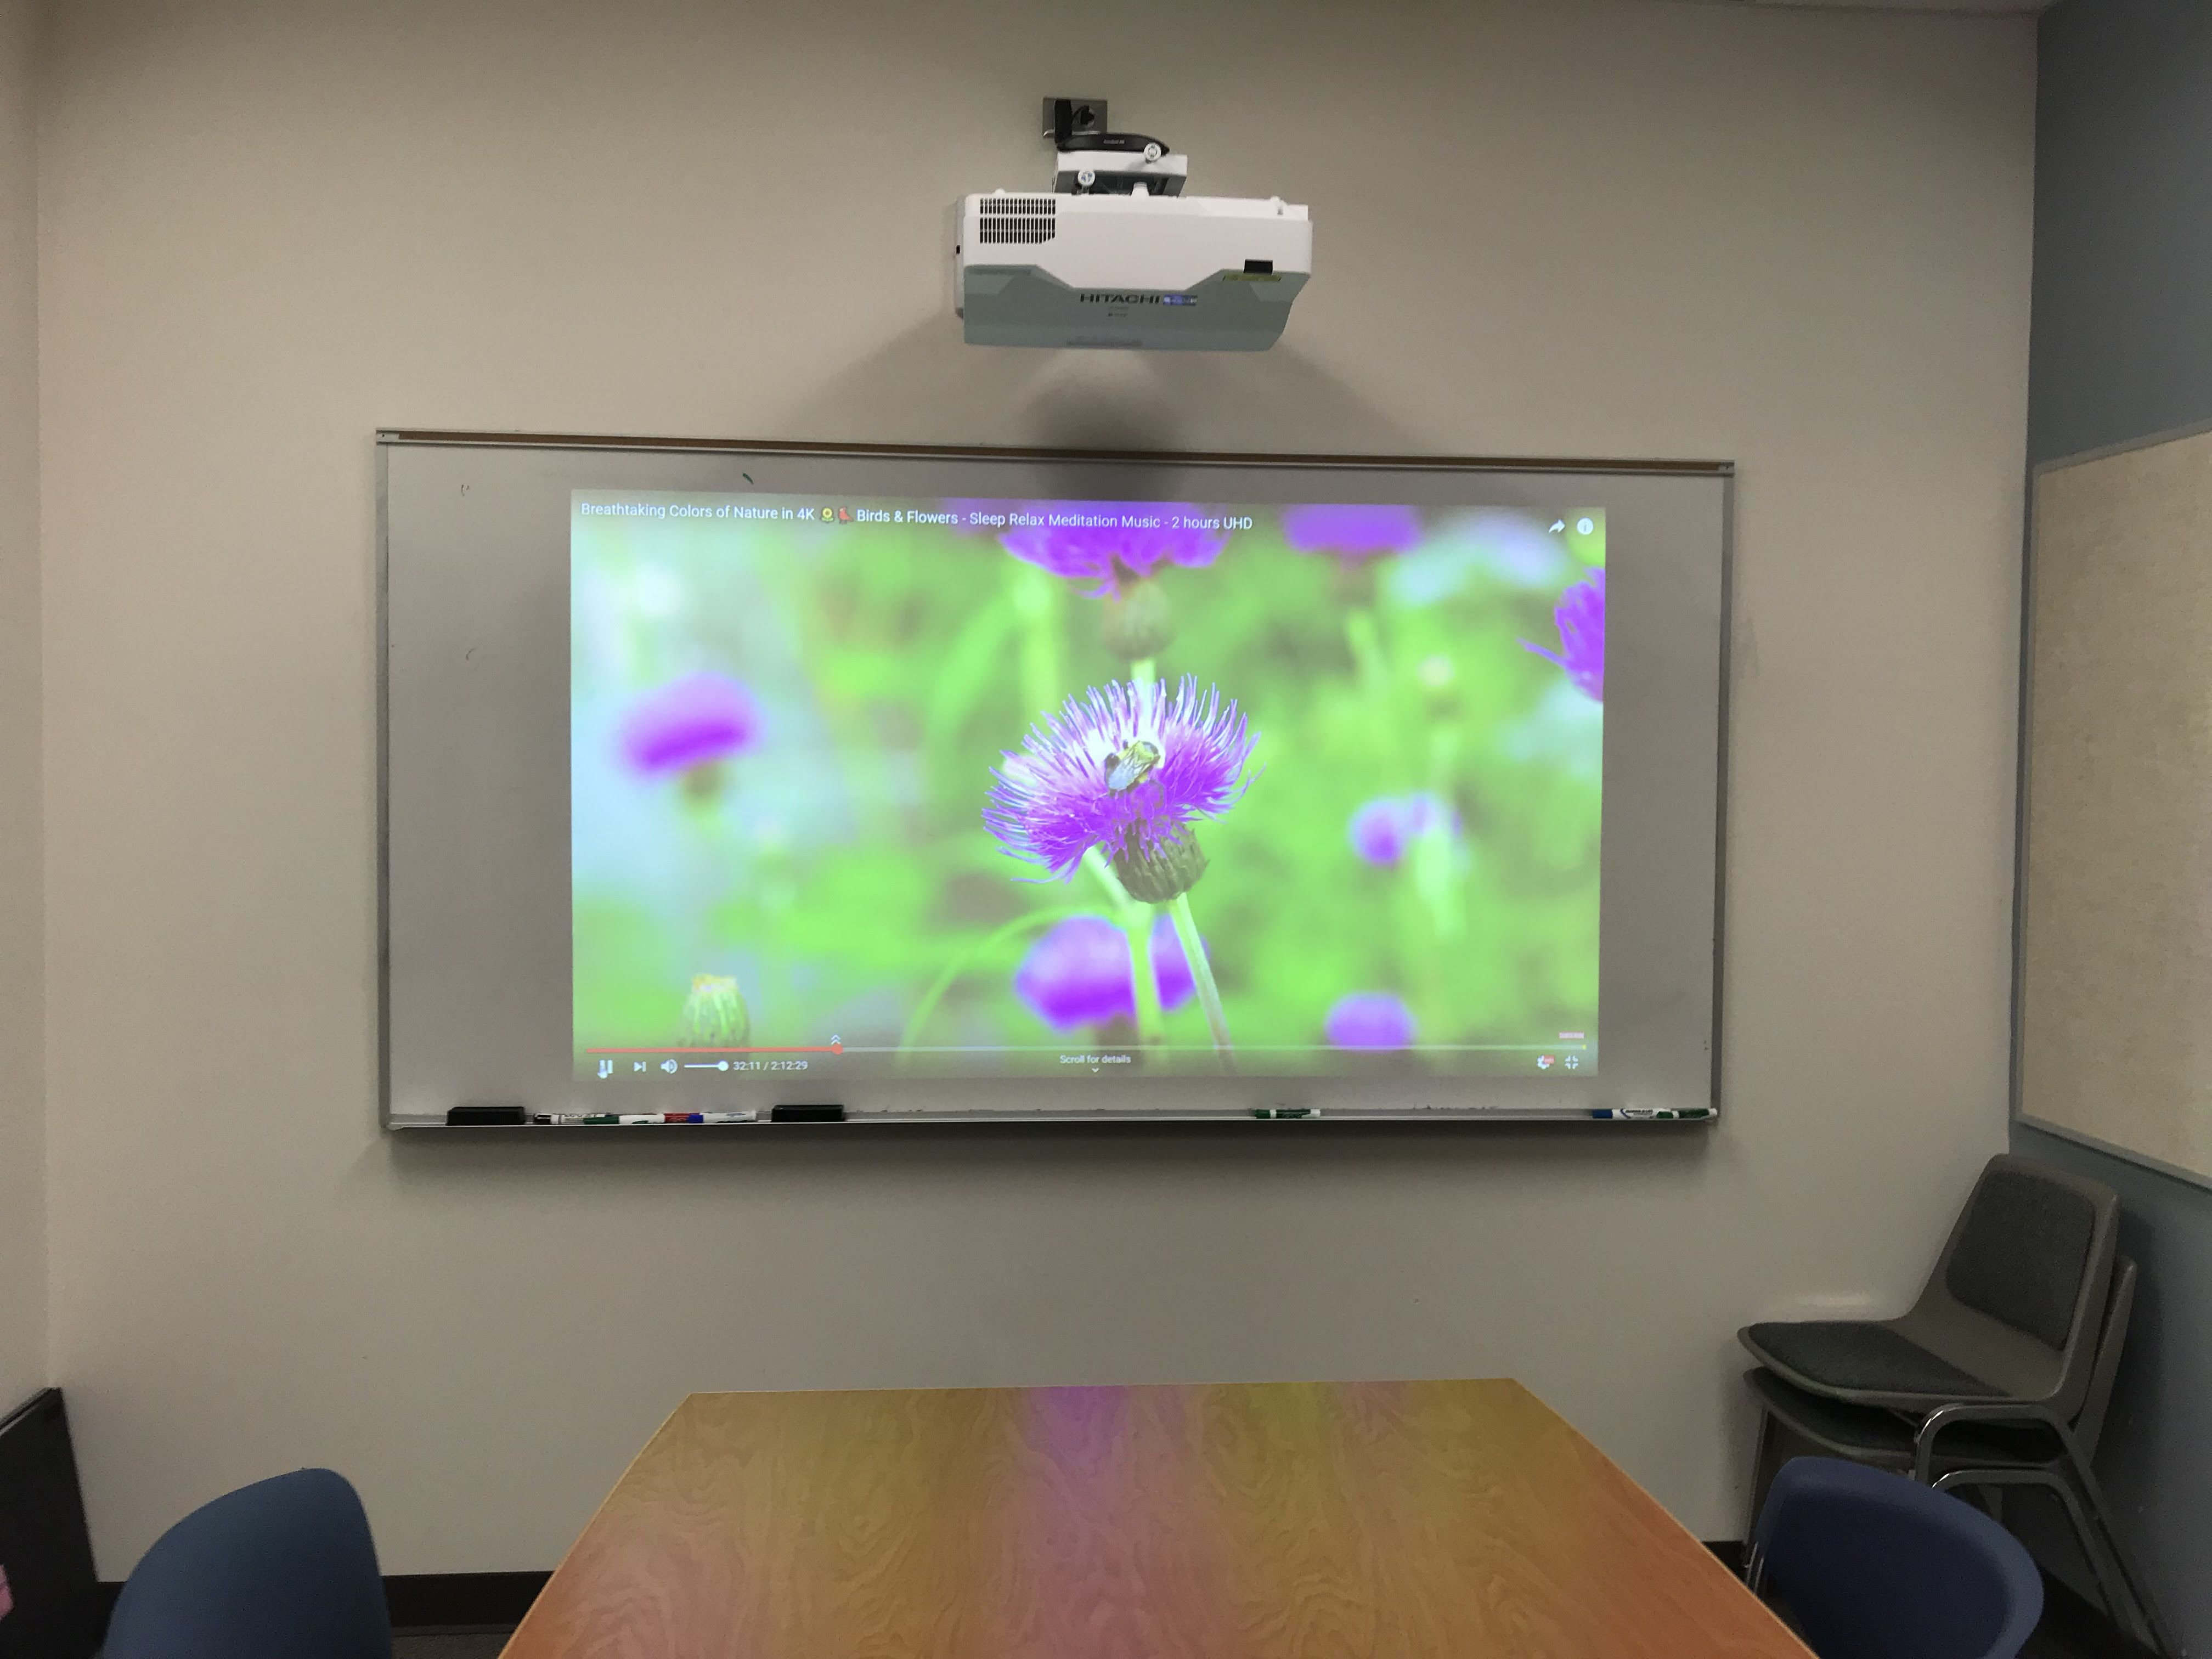 Hitachi Ultra Short Throw Projector In Conference Room Projector Setup Short Throw Projector Setup